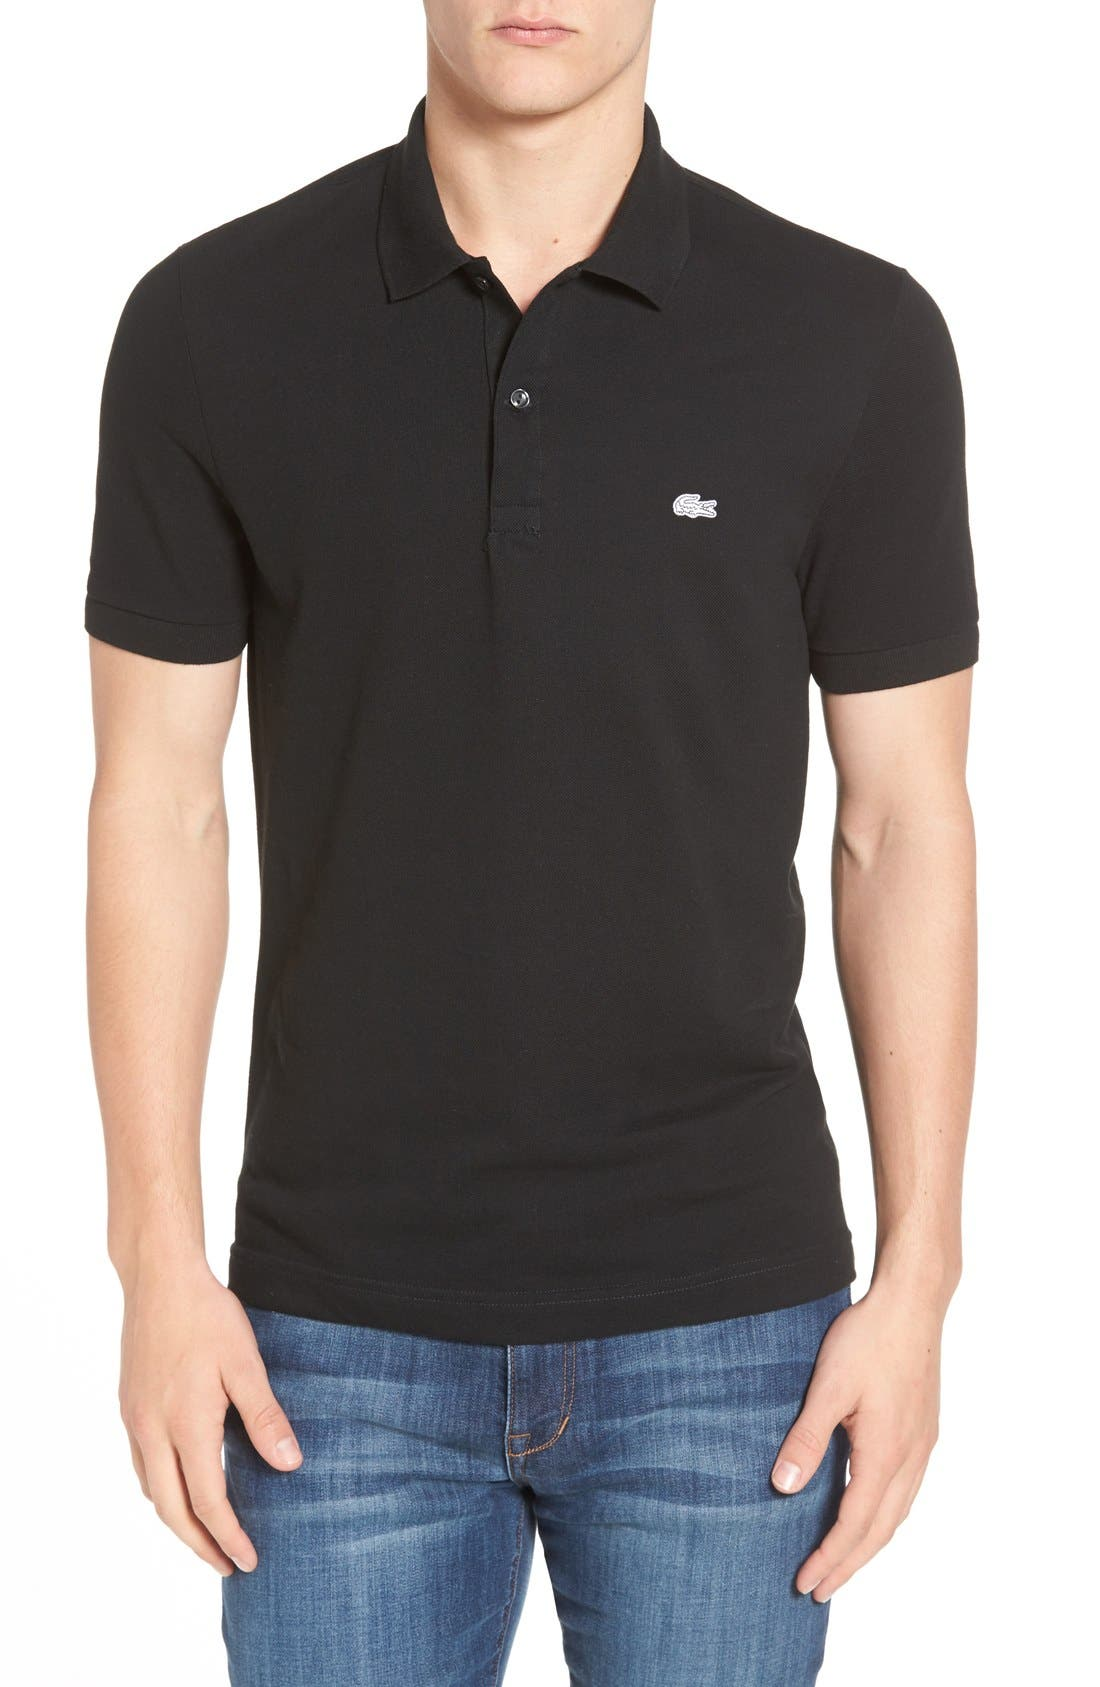 Pique Modesens Regular Fit 'white Croc' In Black Polo Lacoste wZqzOv7Iq